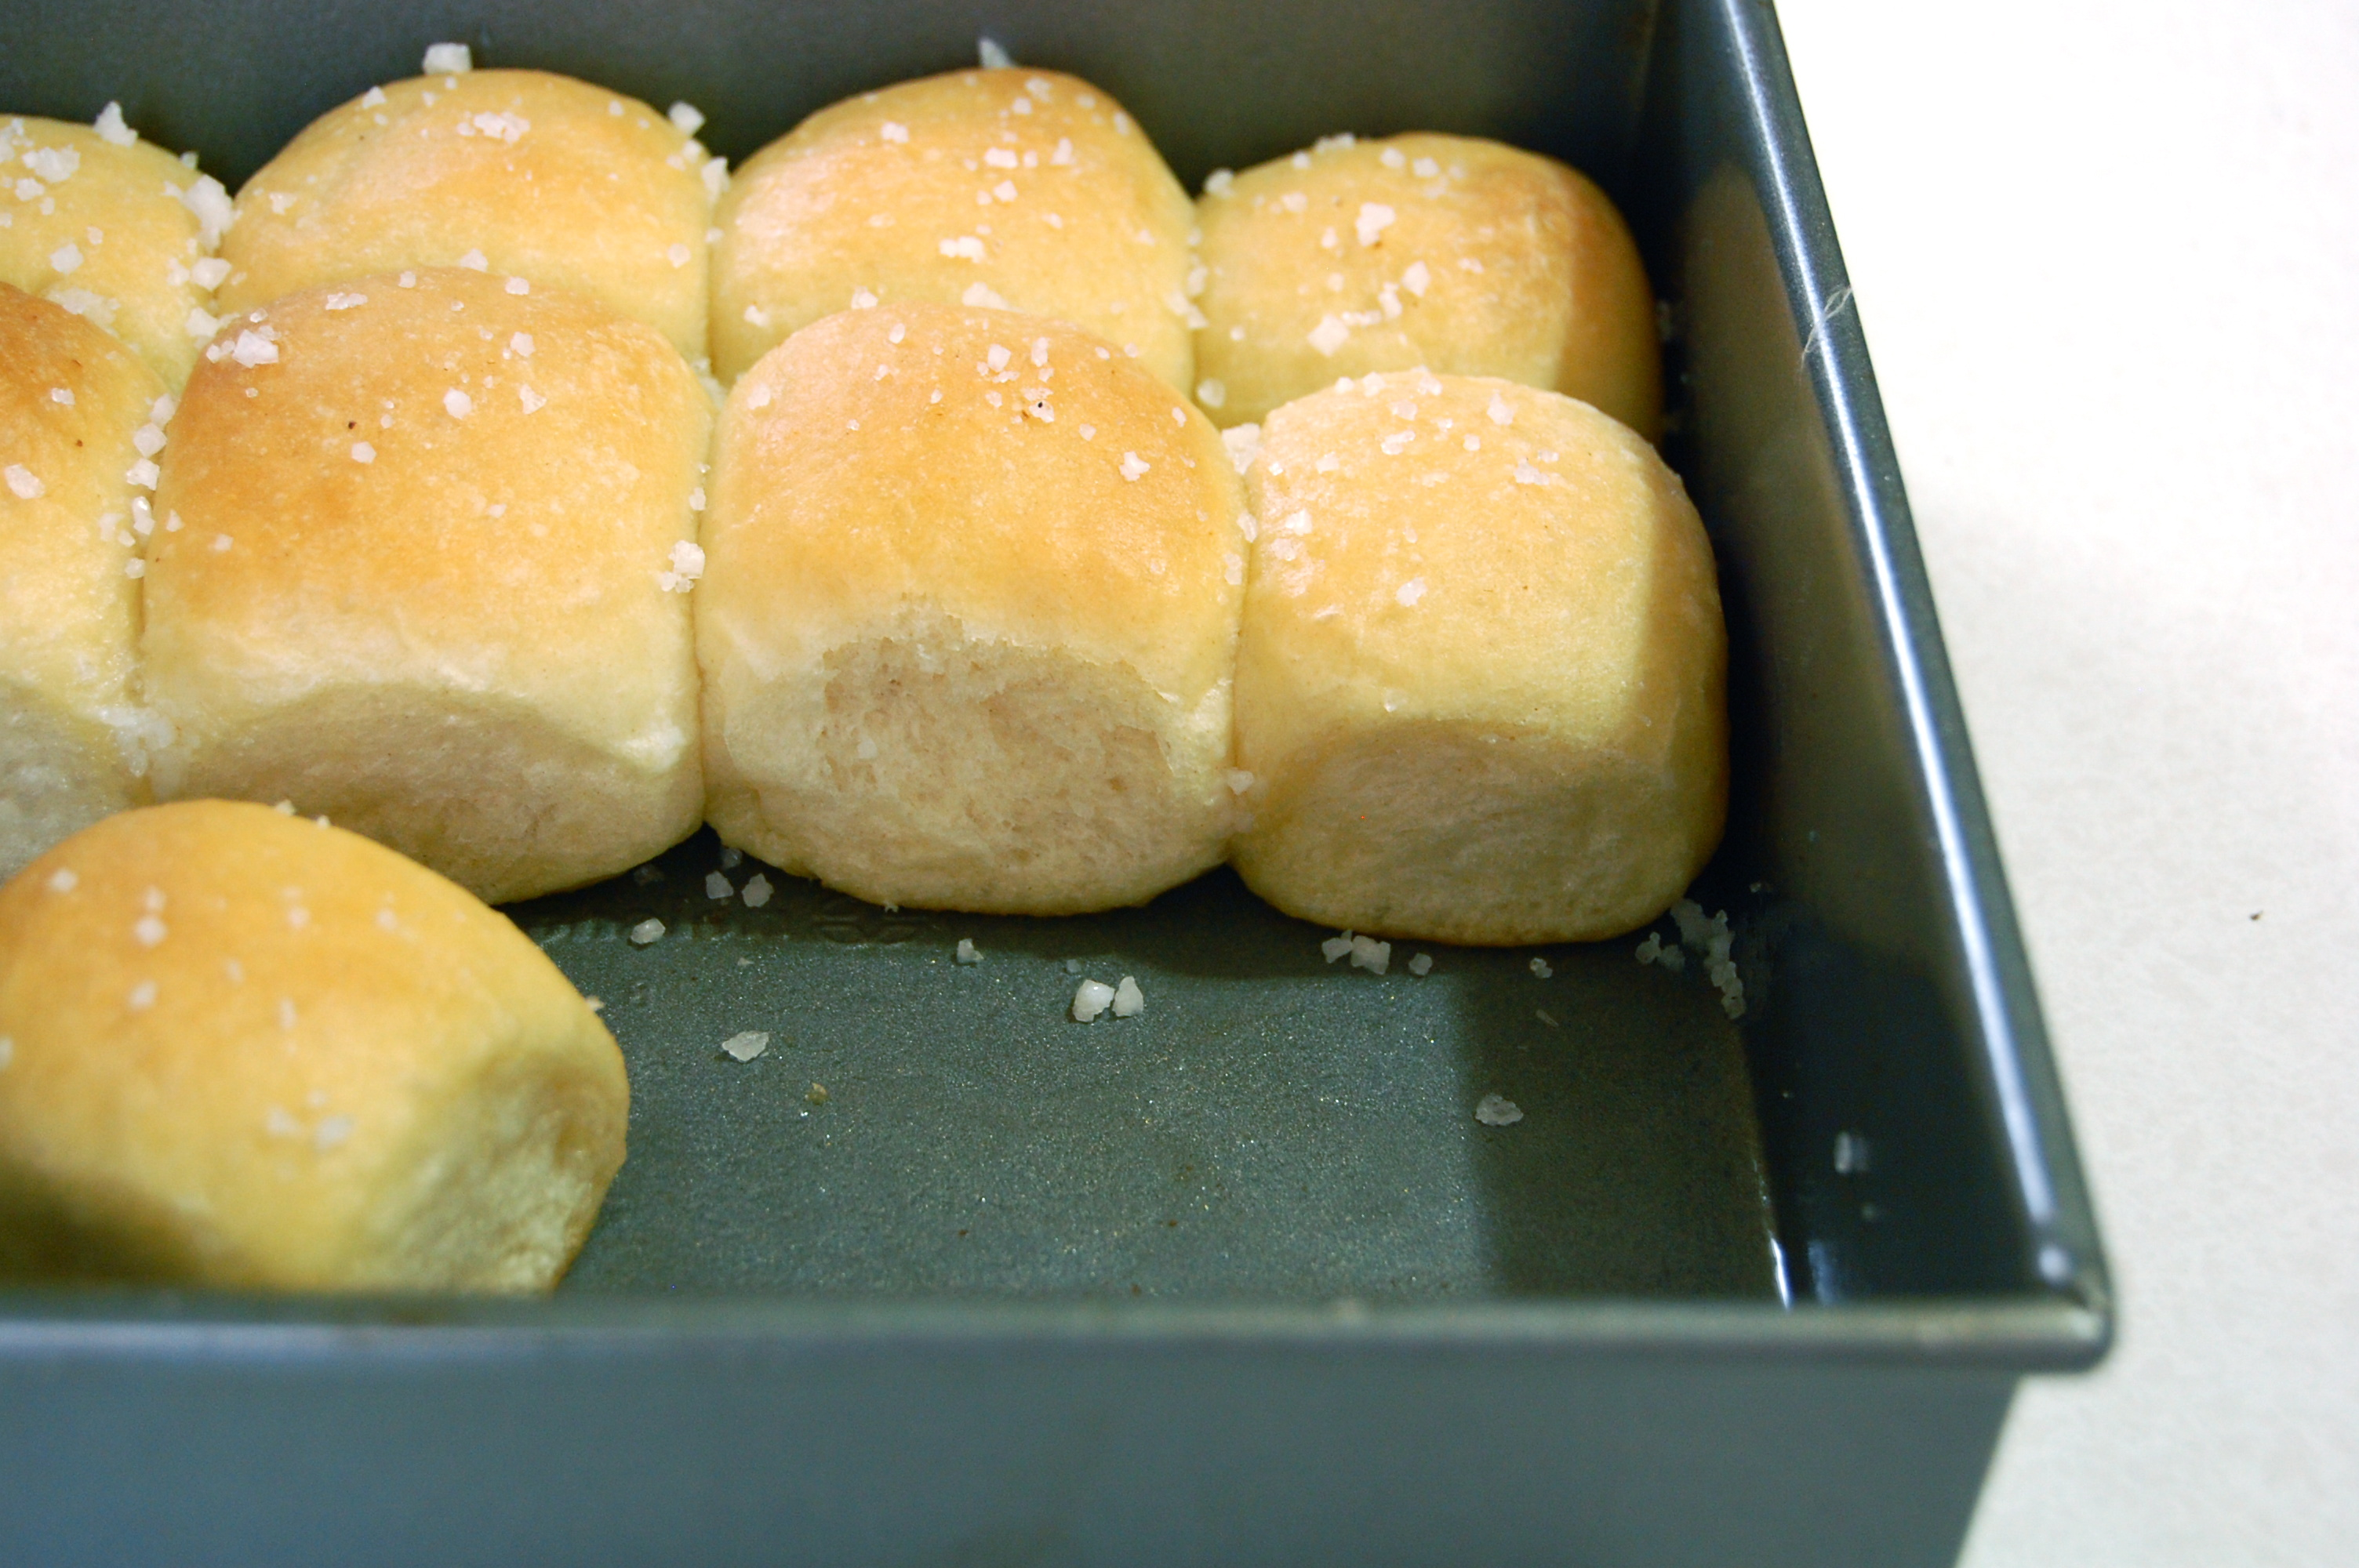 parker house rolls recipe tom colicchio printed in saveur magazine